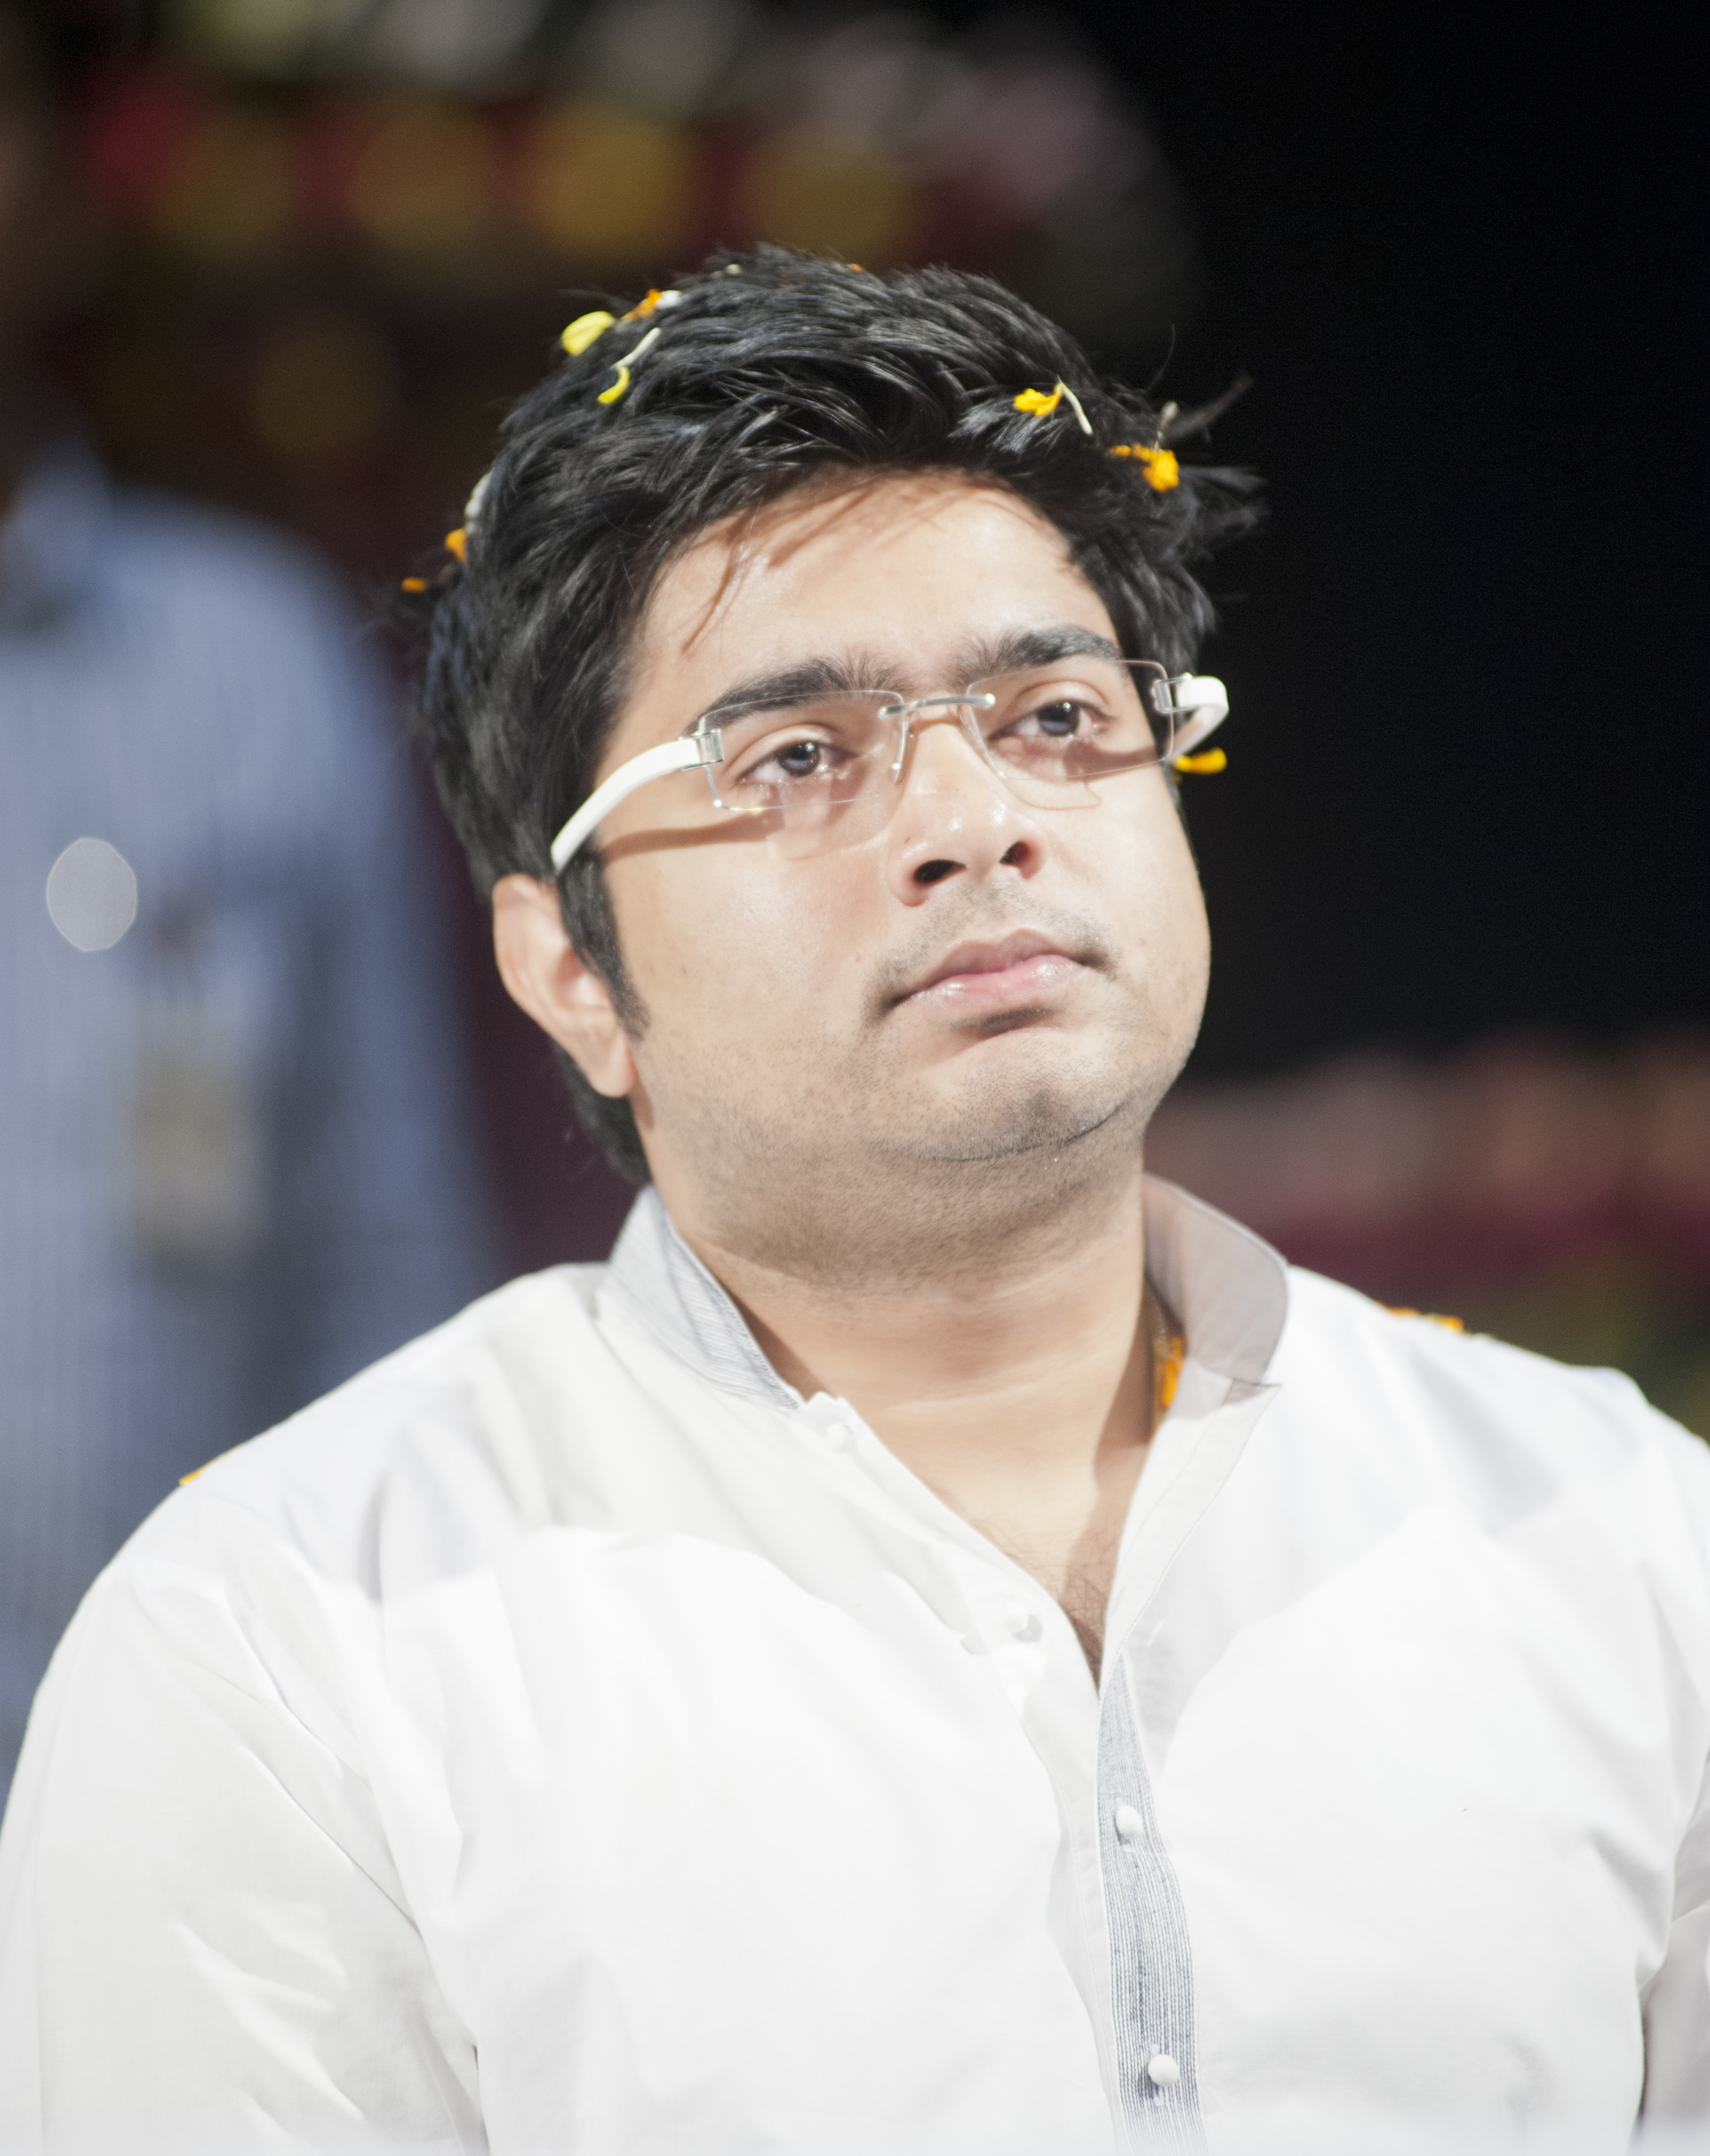 Water poured at helipad to prevent me from coming to Matua stronghold Thakurnagar 2 days ago: TMC MP Abhishek Banerjee.